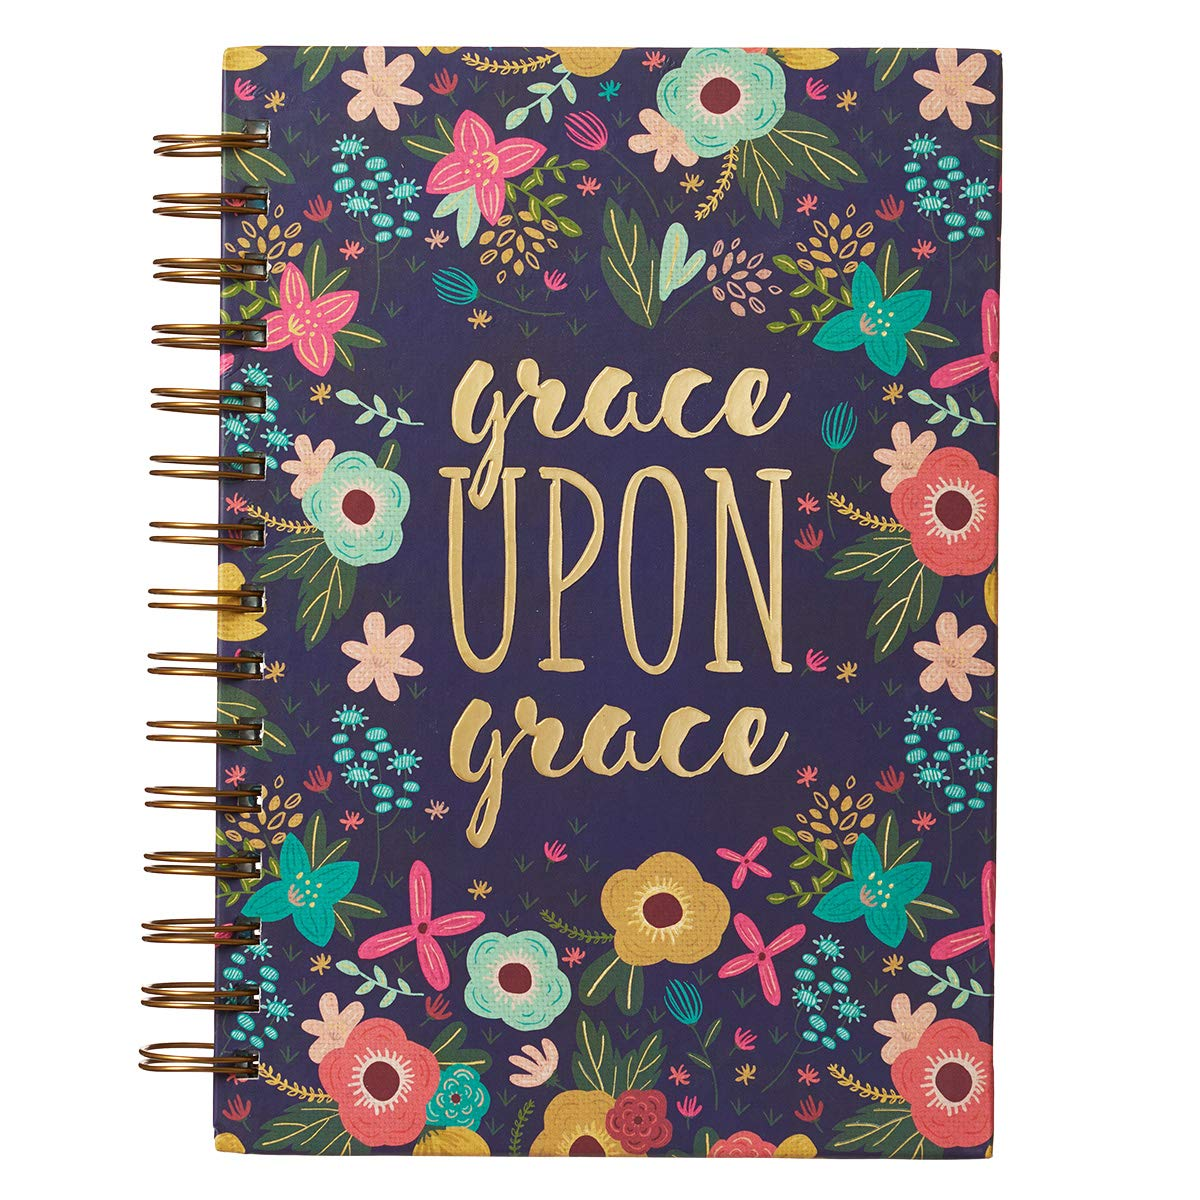 """Christian Art Gifts Large Hardcover Notebook/Journal   Grace Upon Grace – John 1:16 Bible Verse   Pink Floral Inspirational Wire Bound Spiral Notebook w/ 192 Lined Pages, 6"""" x 8.25"""""""